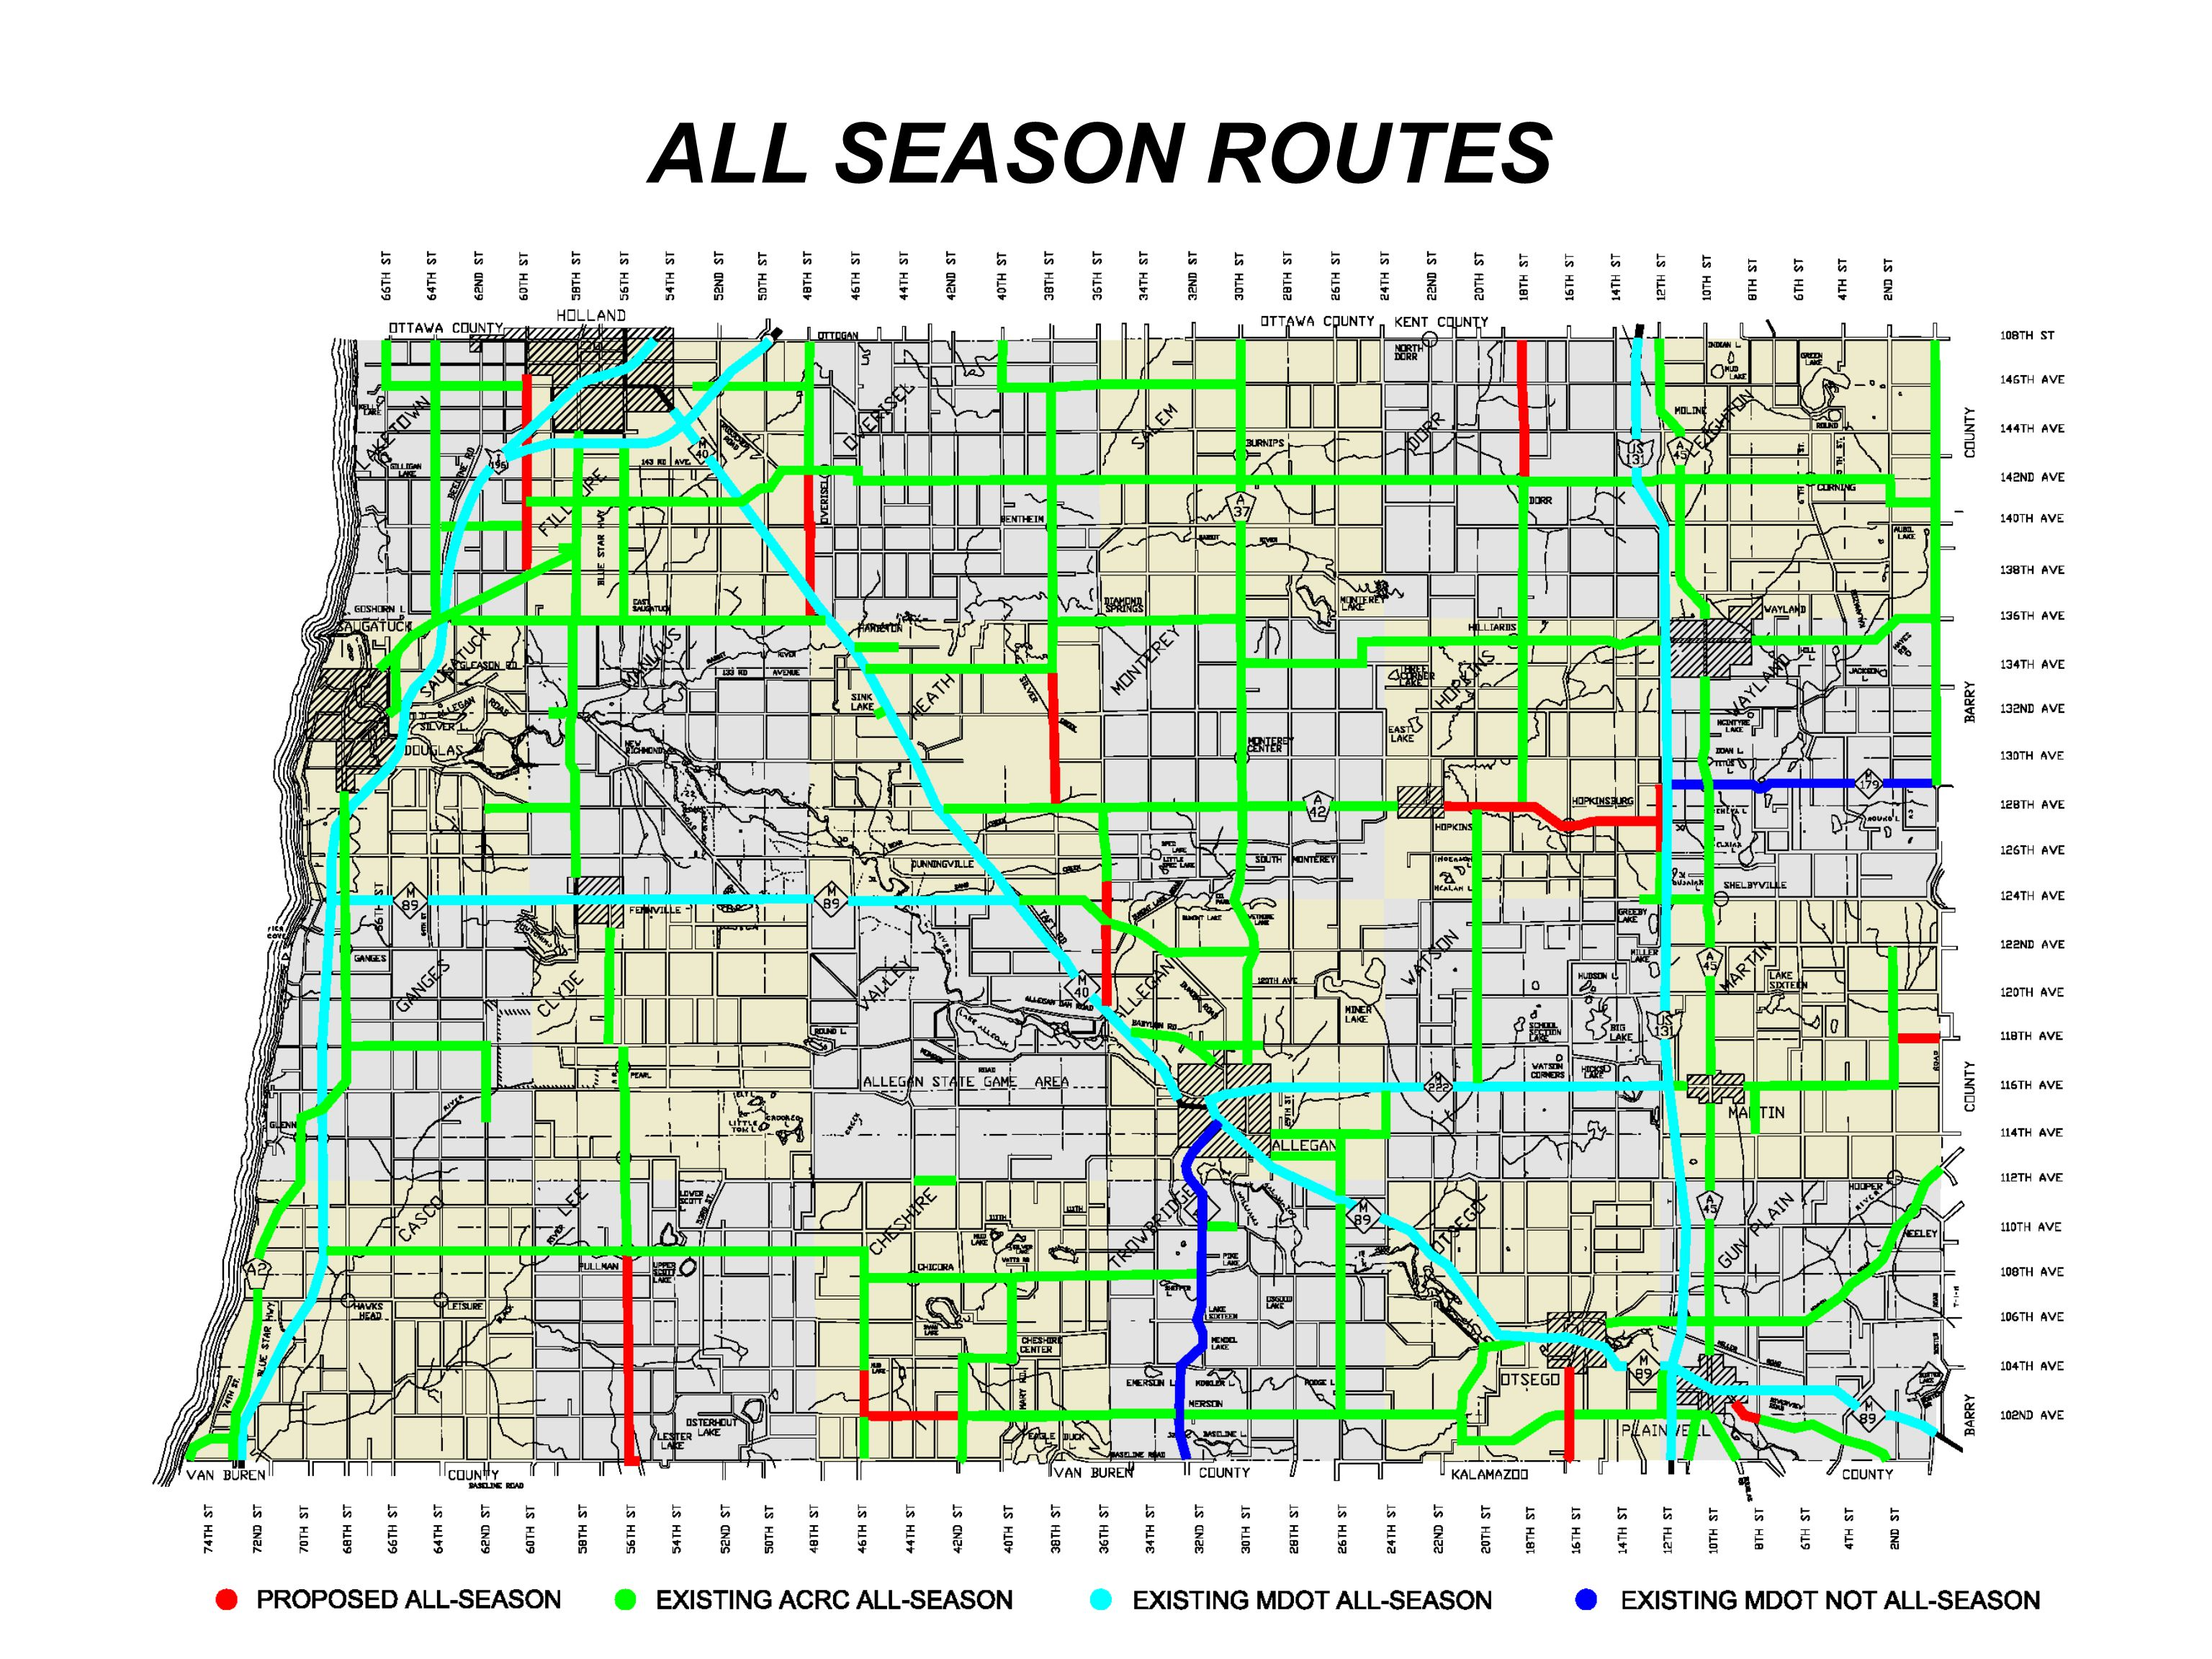 ALL SEASON ROUTES